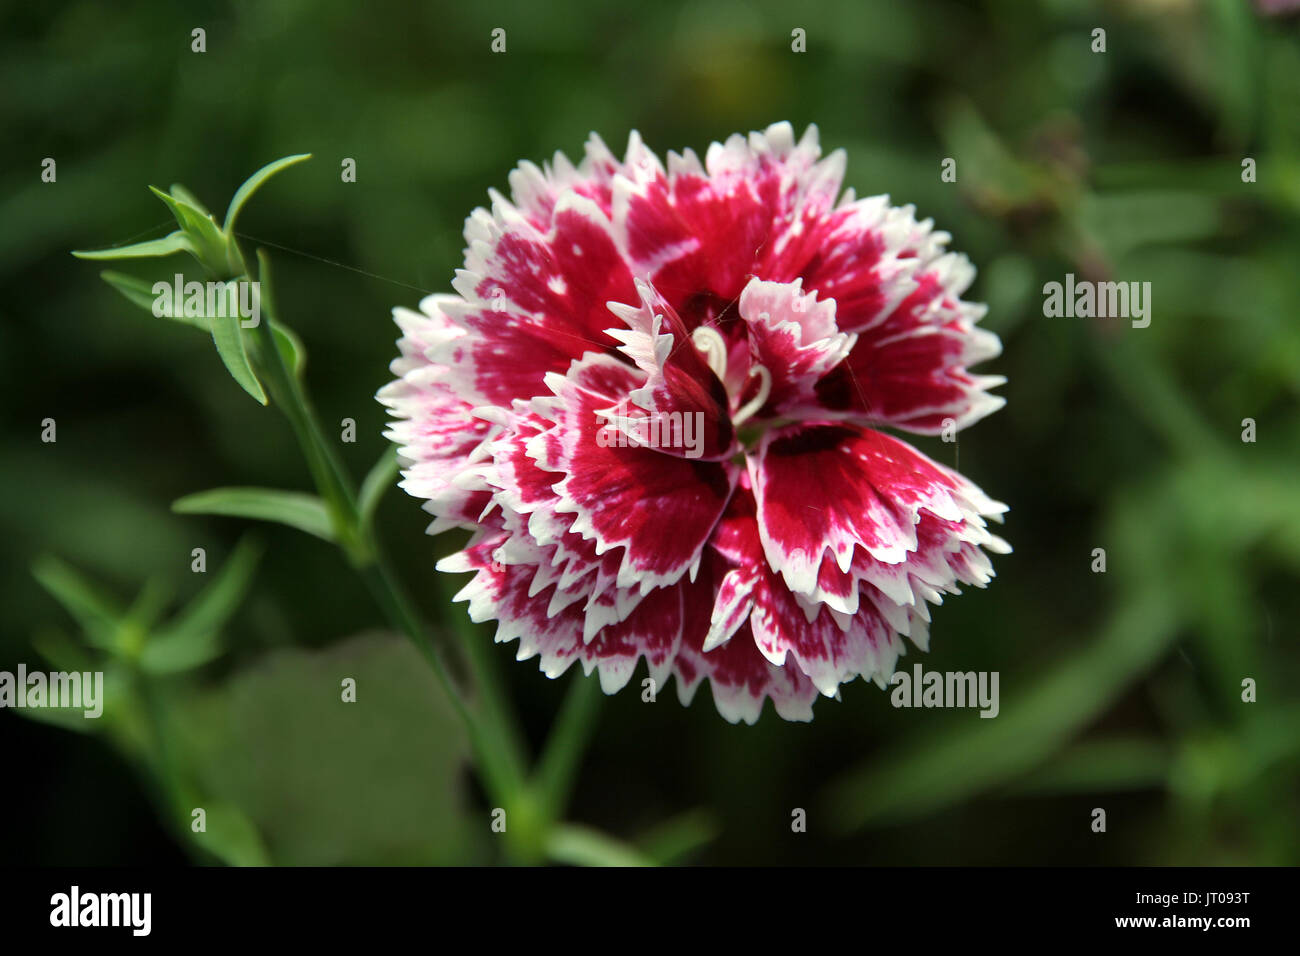 Beautiful arrangement of floral petals in white and red sectors with edge trimming - Stock Image